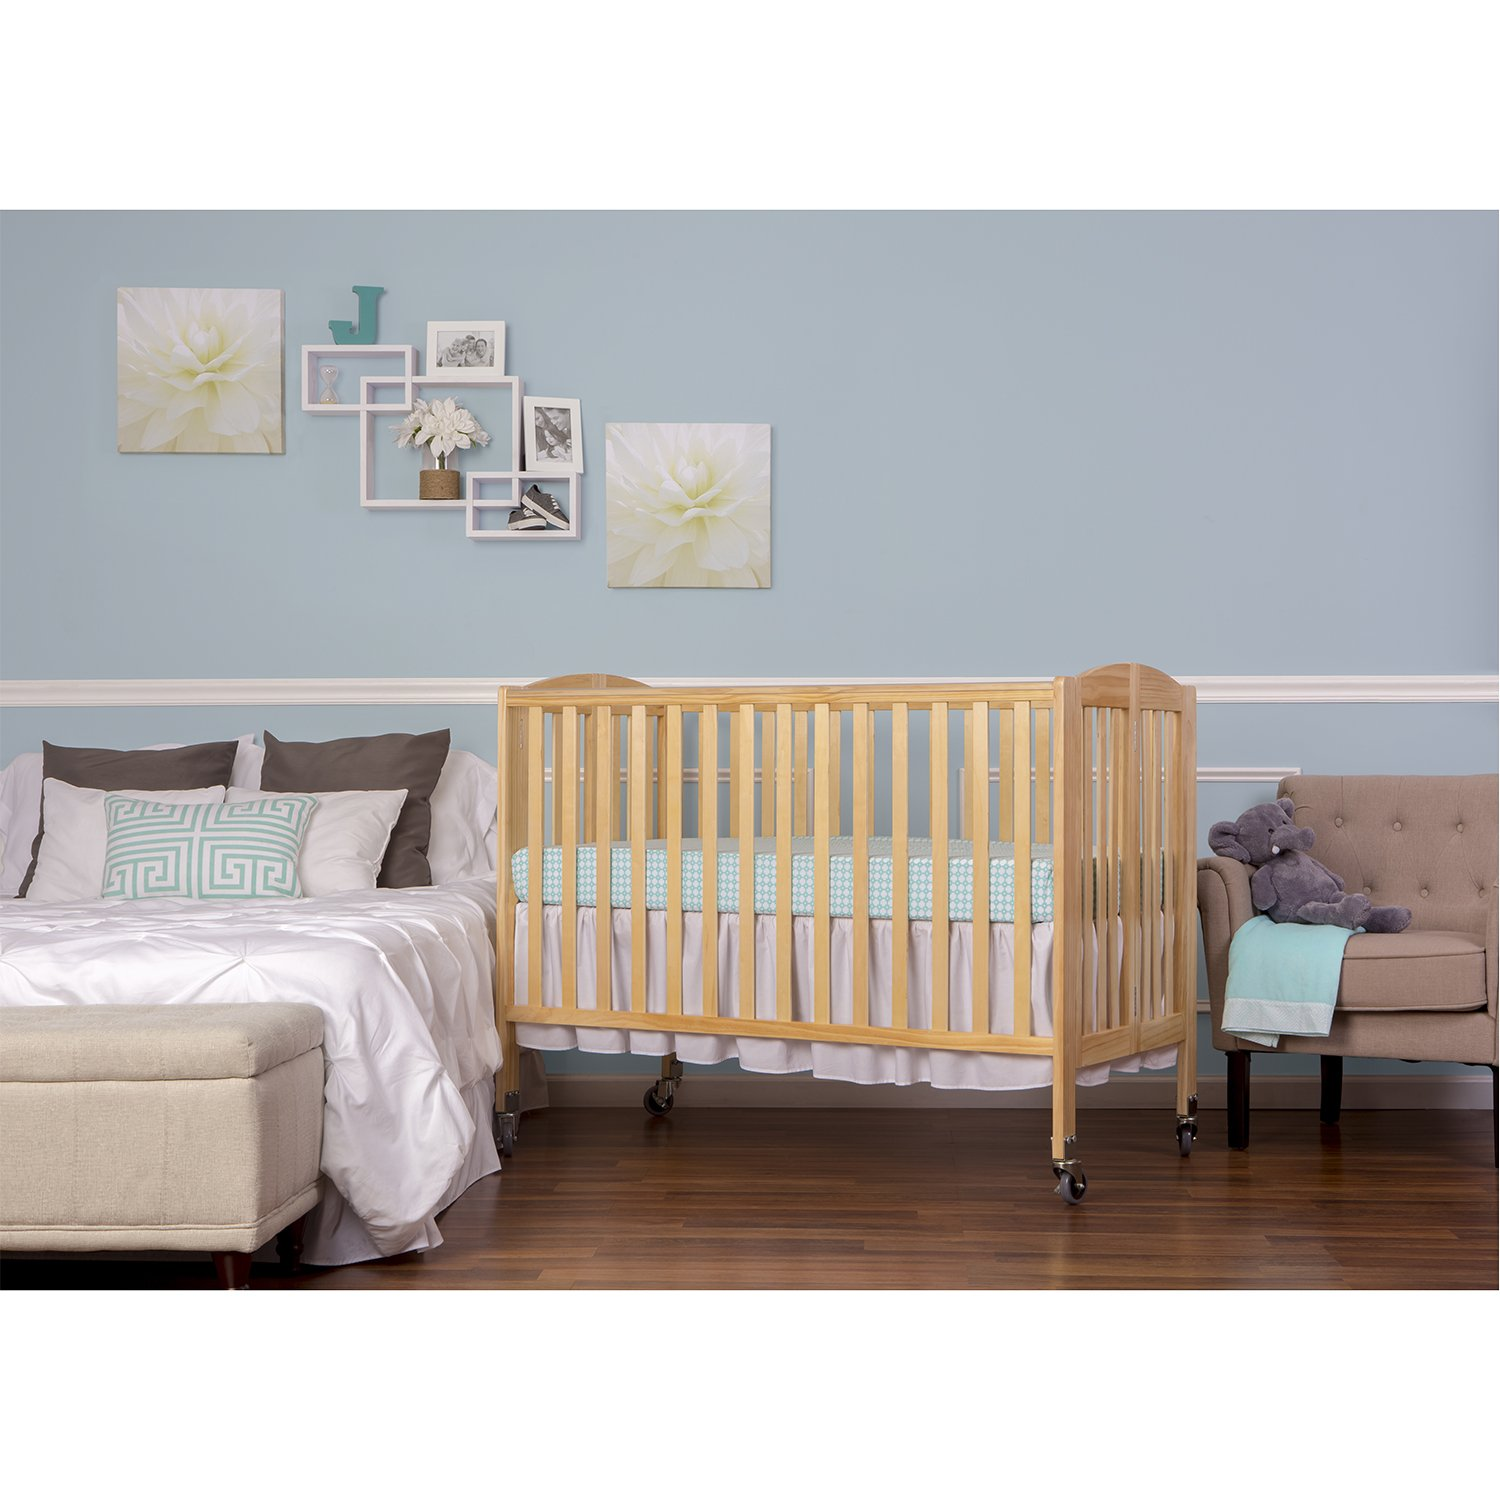 Dream On Me Folding Full Size Convenience Crib, Natural by Dream On Me (Image #1)